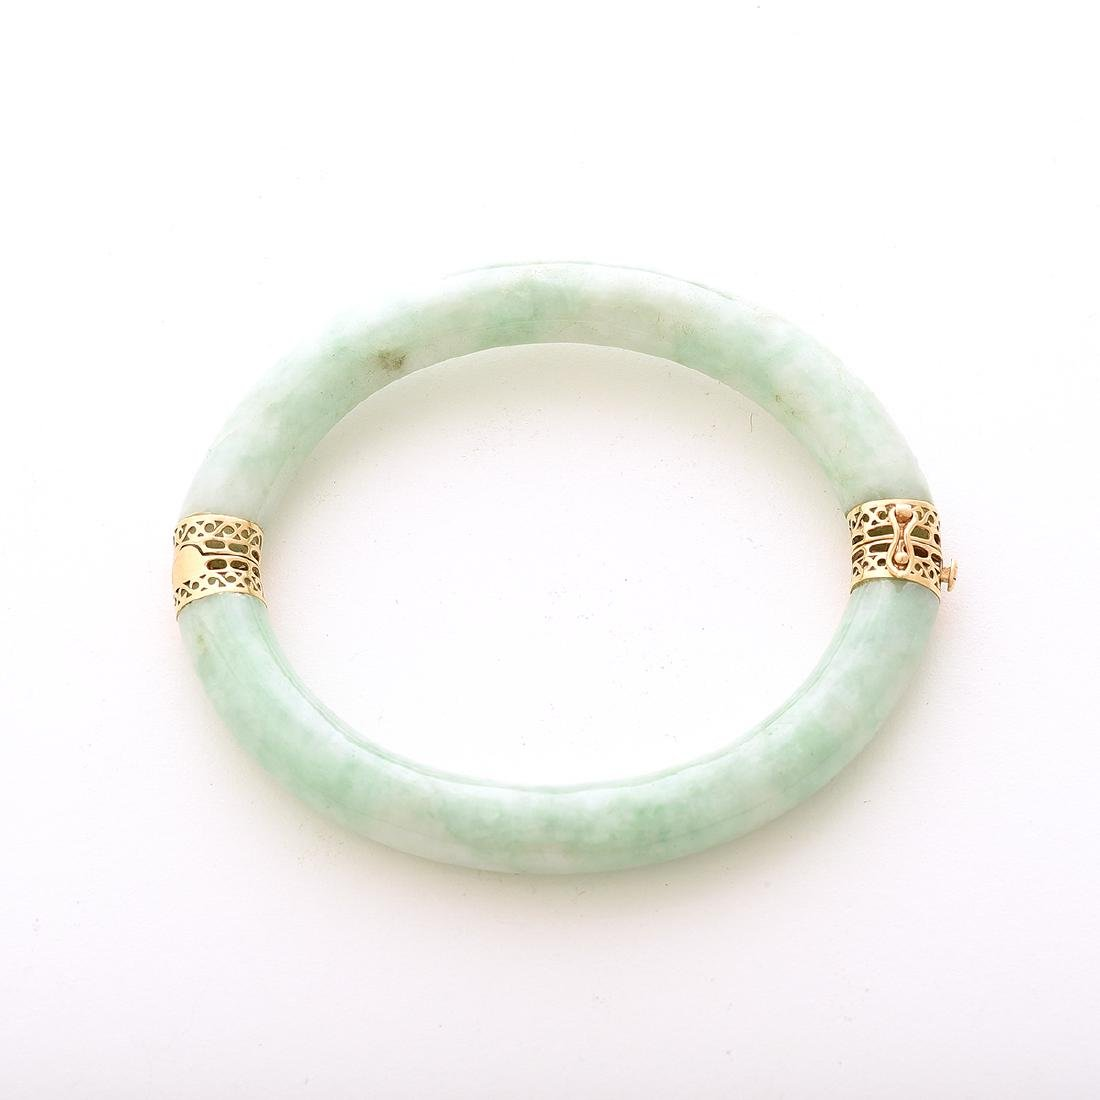 Jade, 14k Yellow Gold Bracelet. - 3